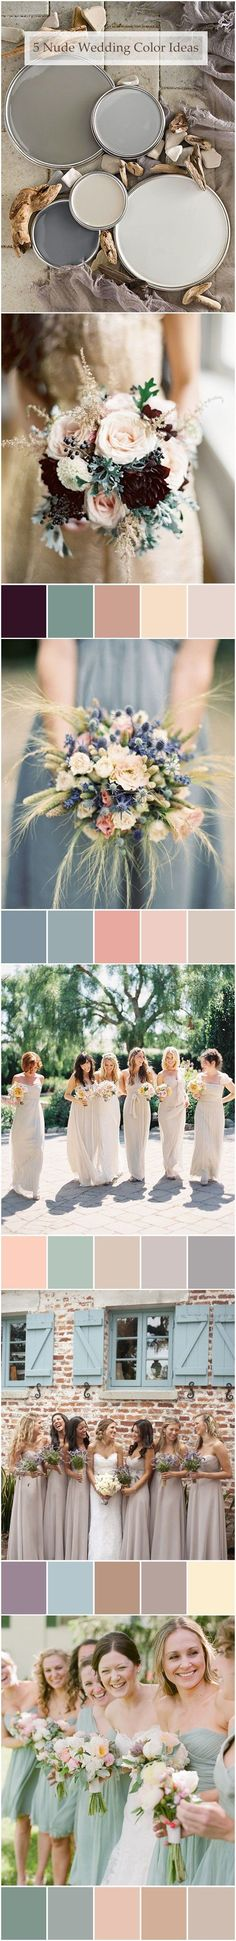 top 6 trending nude neutral wedding color ideas #weddingcolors #weddingideas